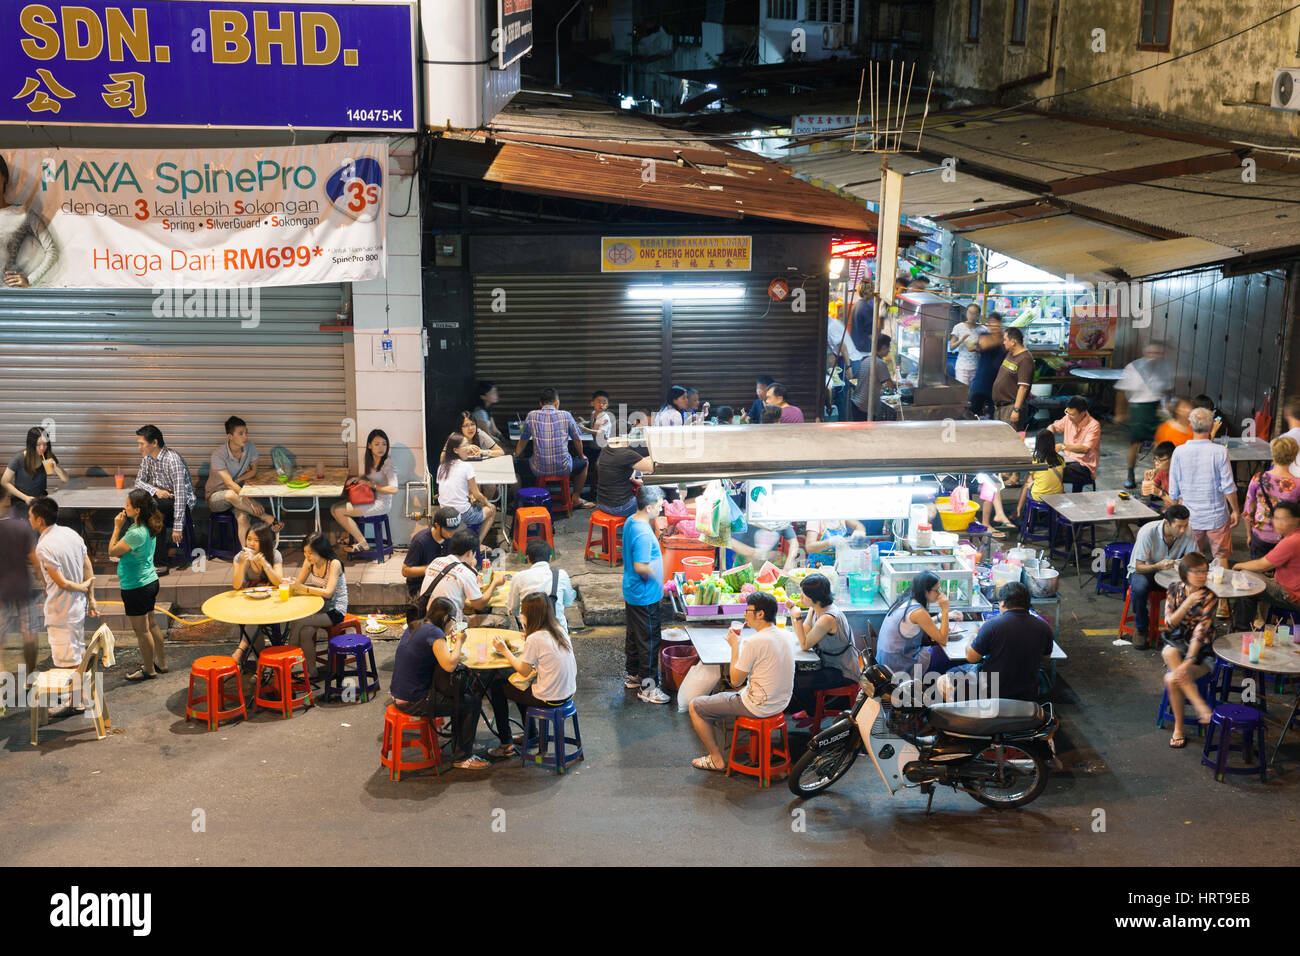 Georgetown, Malaysia - 03 August, 2014: The crowd of people dining at the street food stalls on Lebuh Chulia in Stock Photo